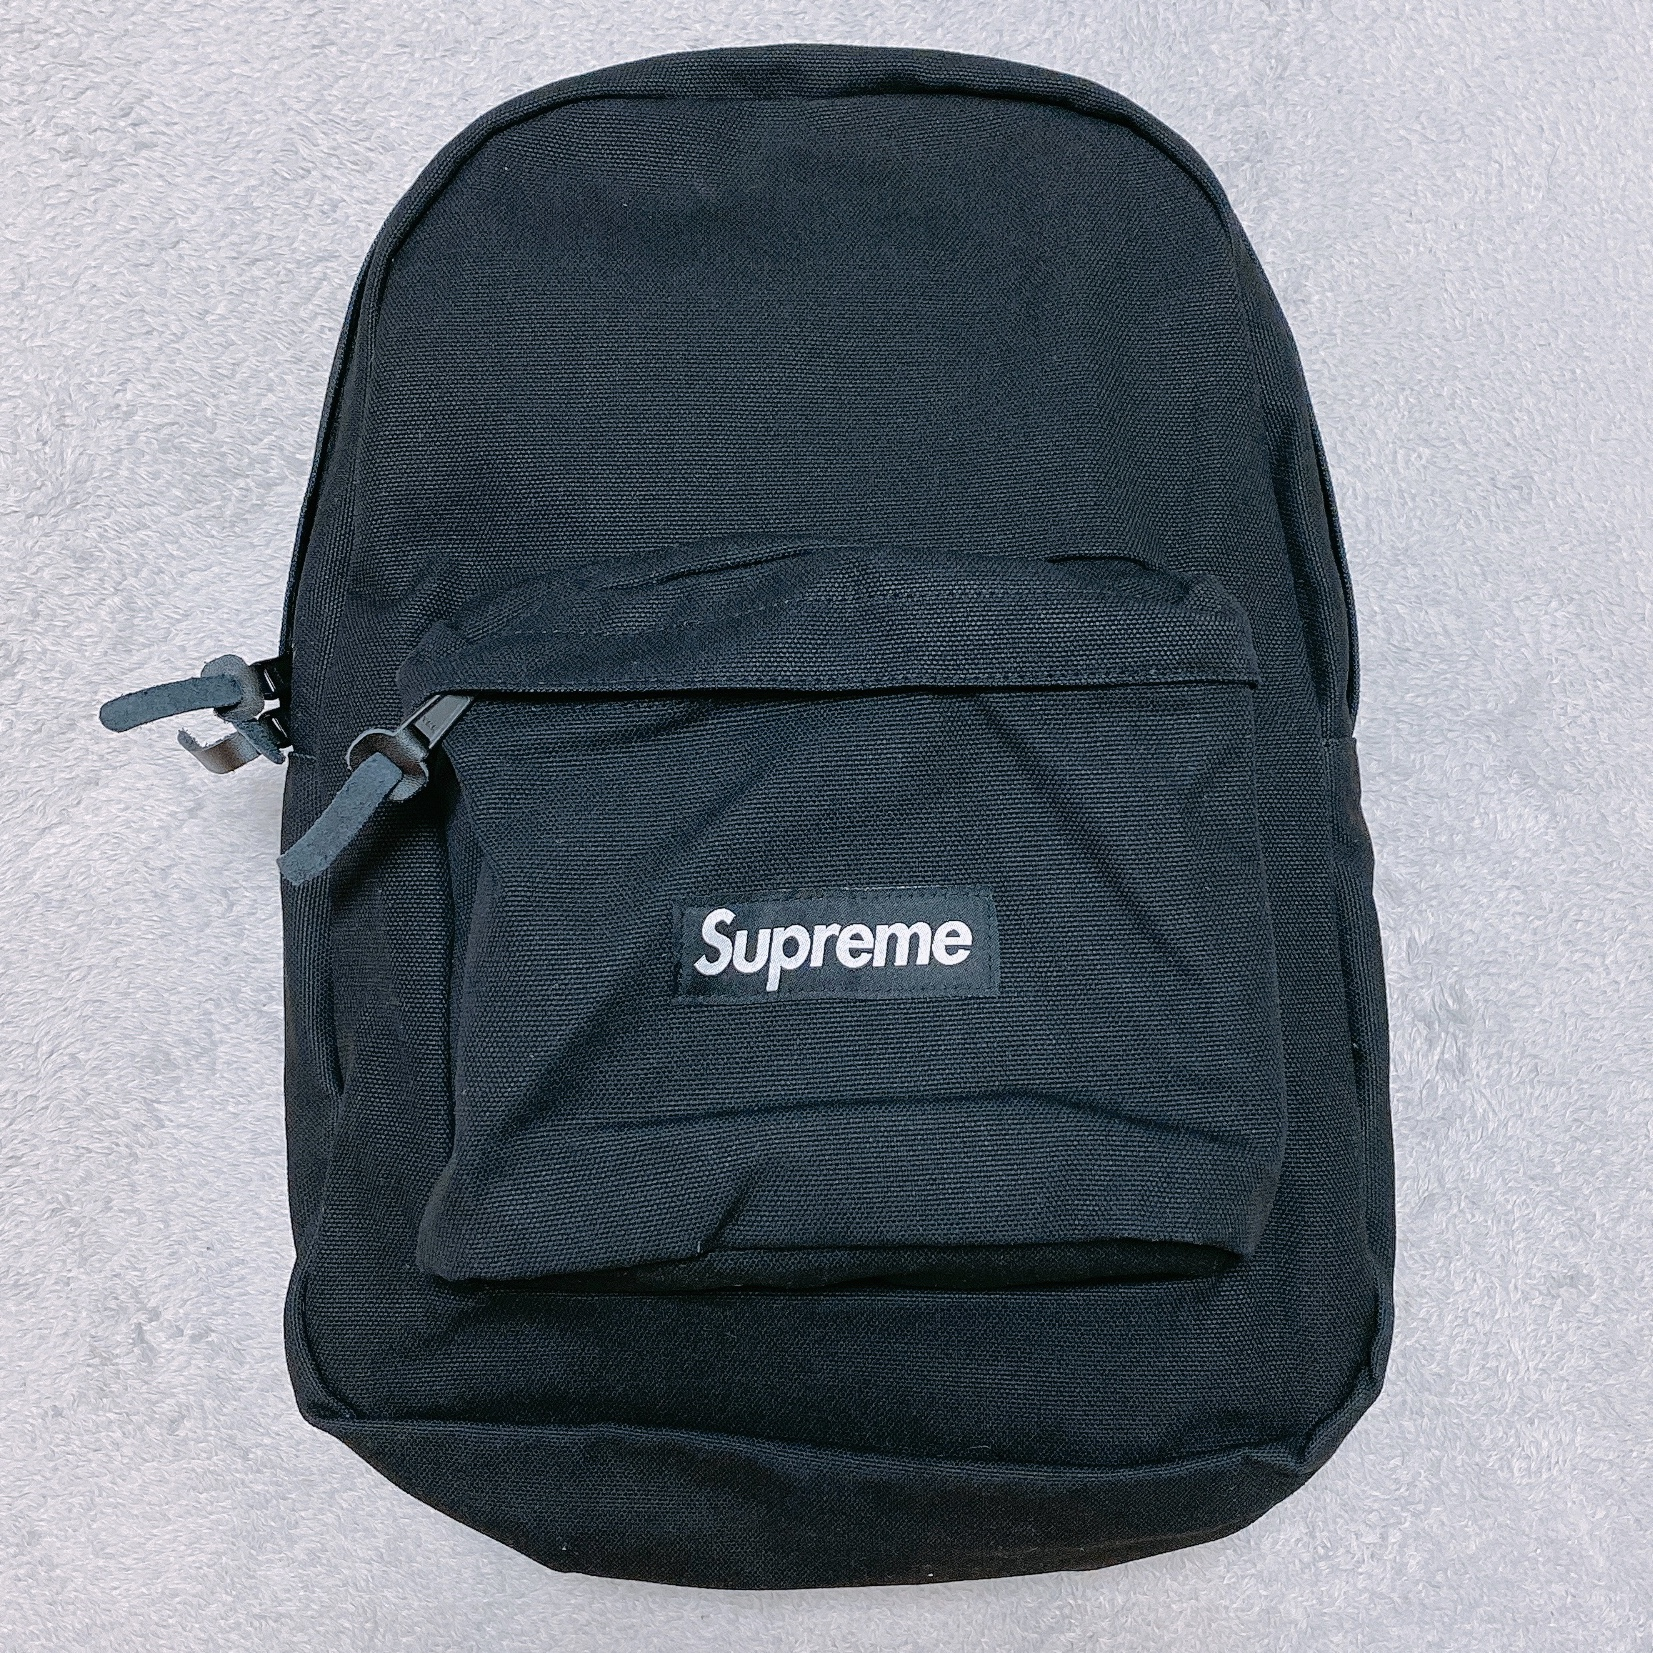 supreme-20aw-20fw-canvas-backpack-review